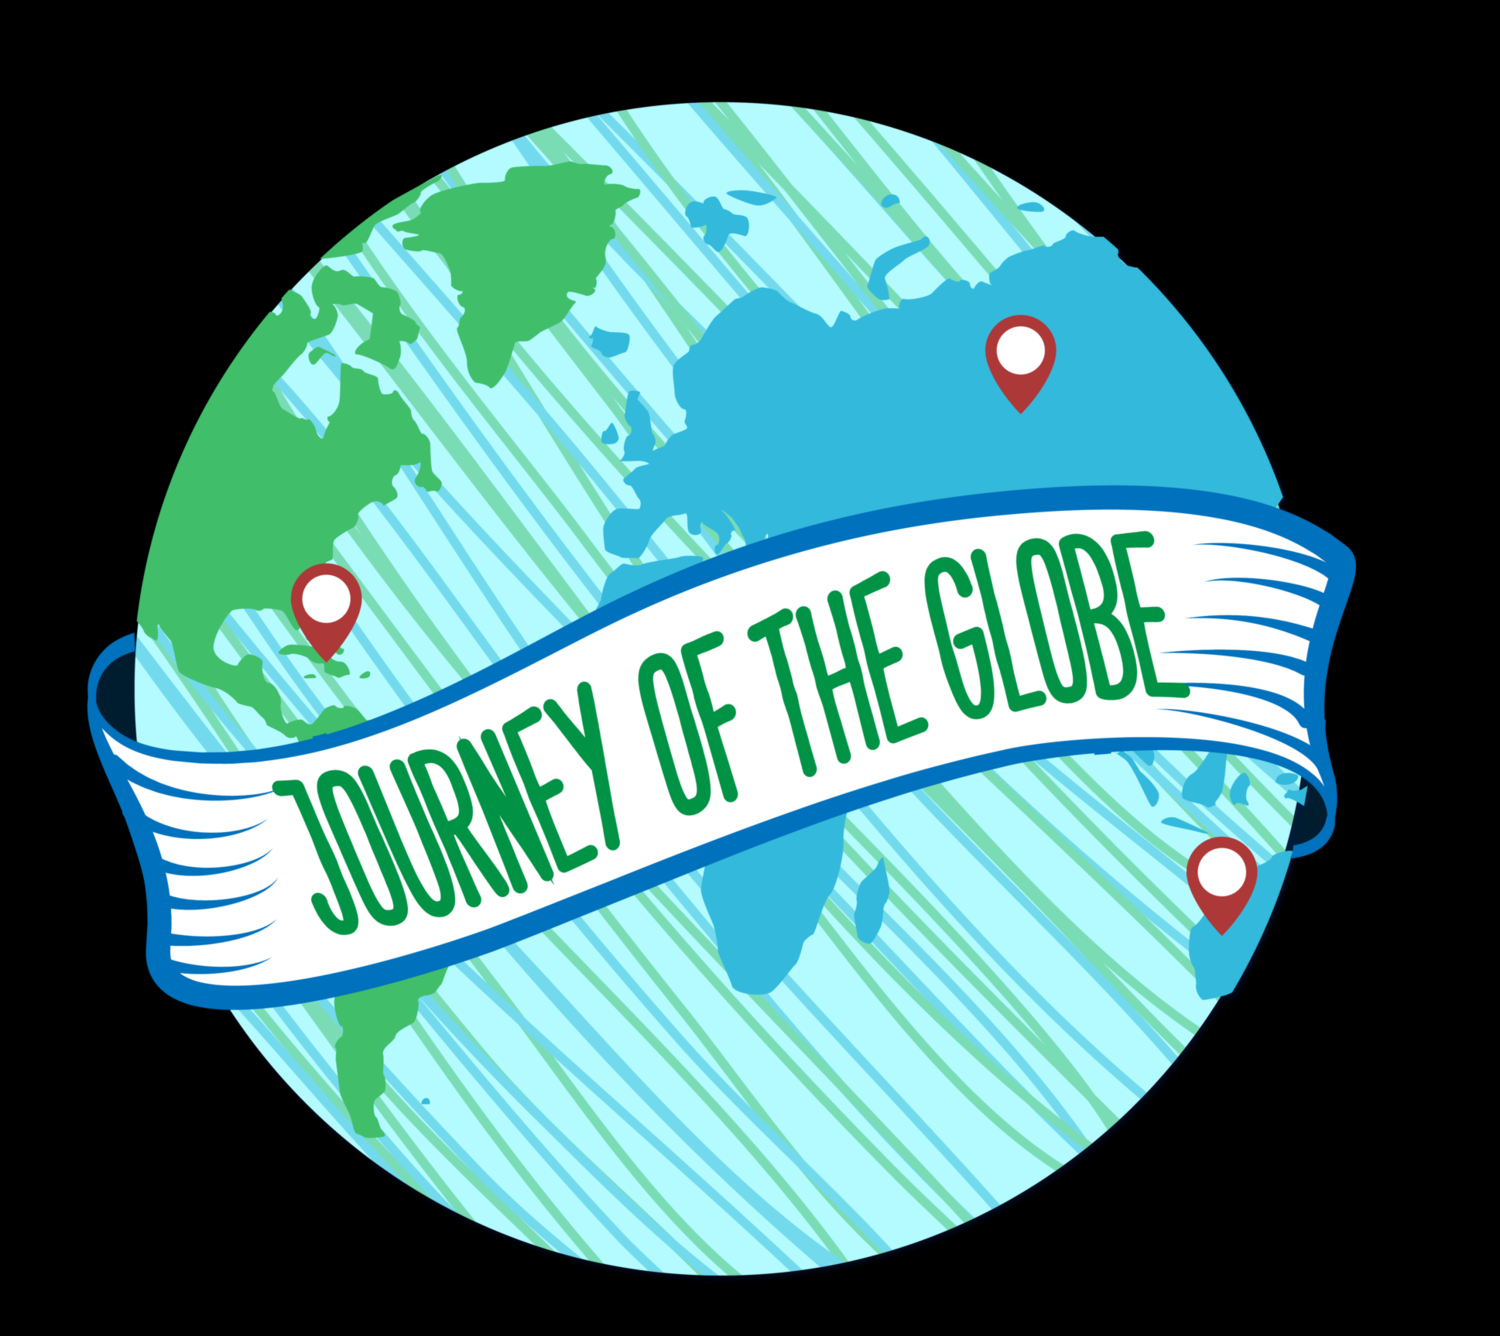 Journey of the Globe